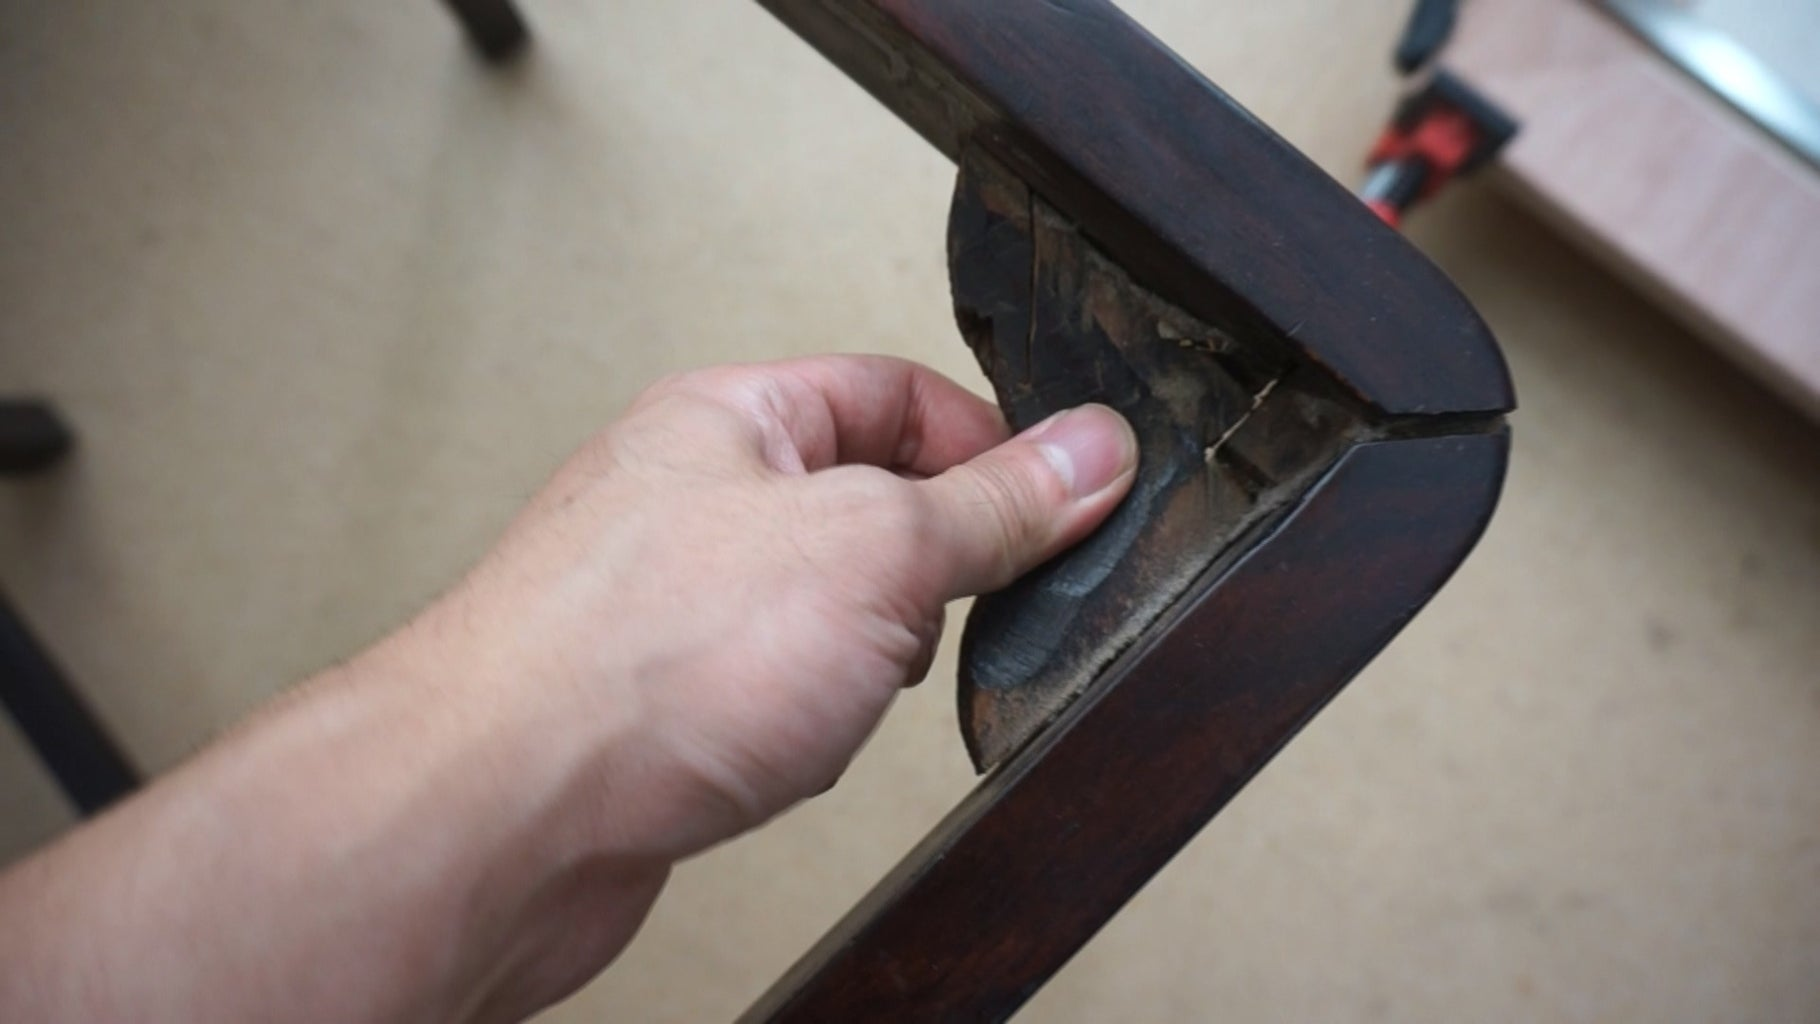 Disassemble the Chair - Remove the Corner Brace